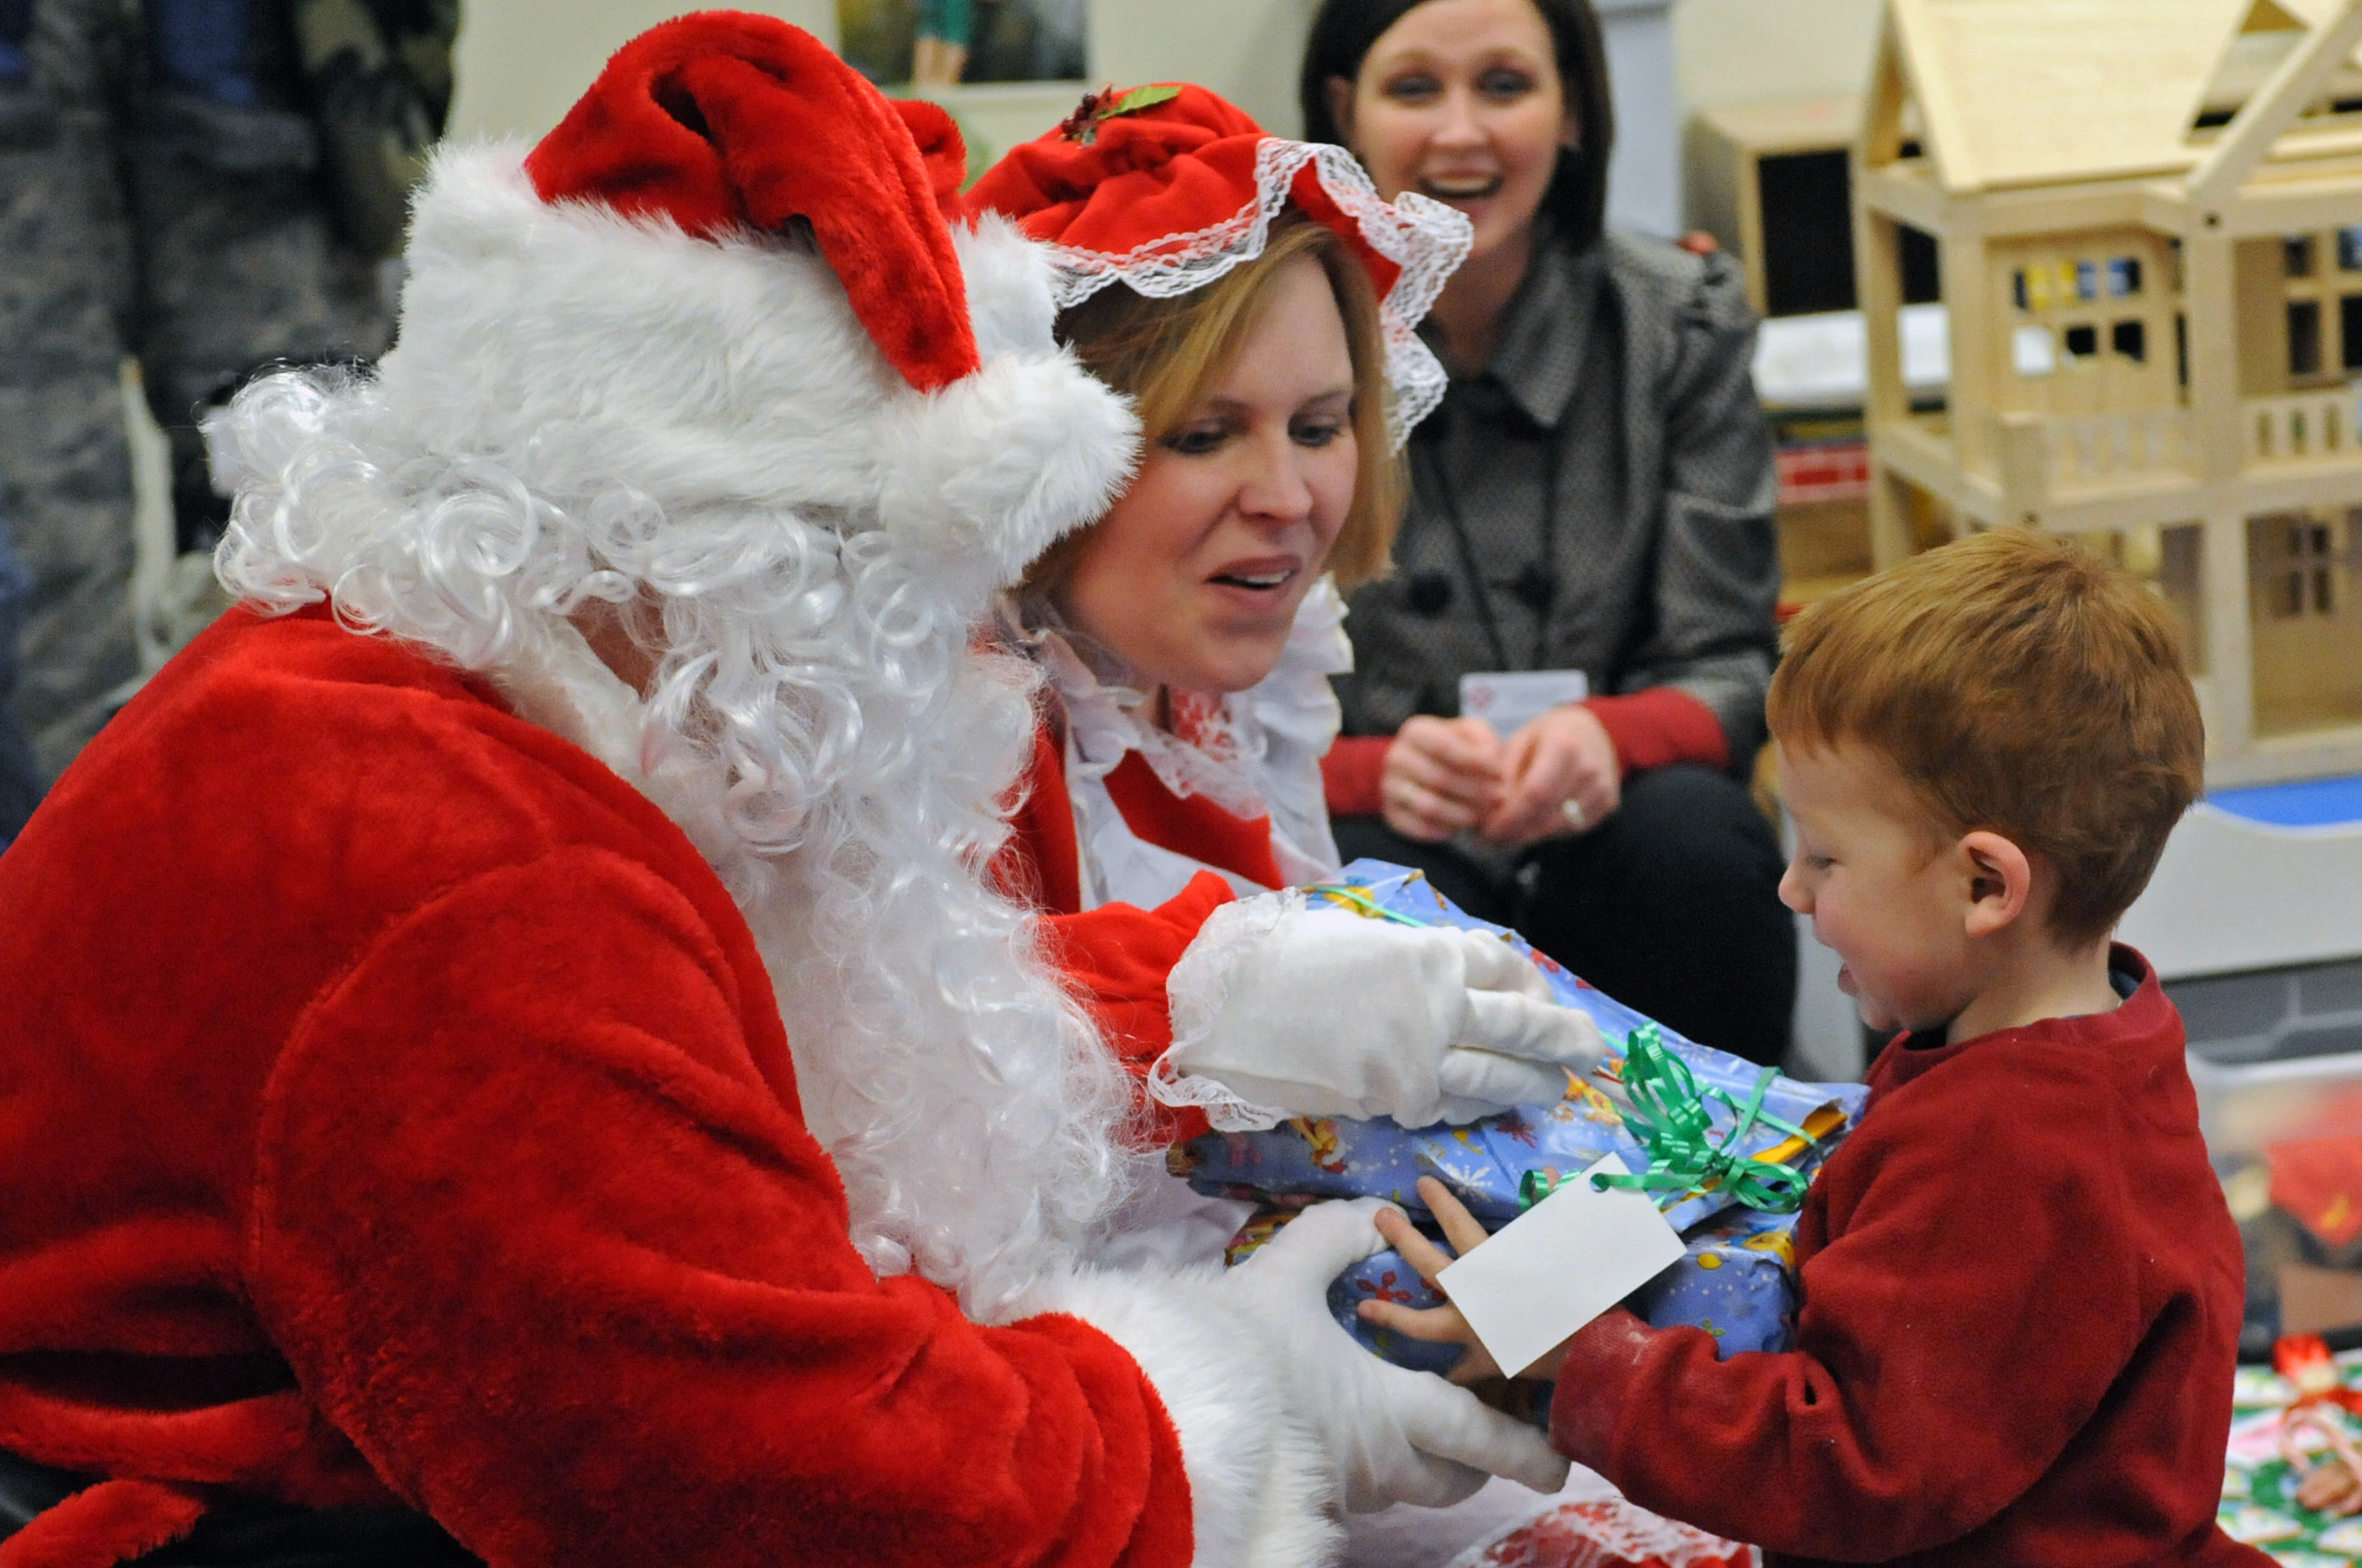 Santa and Mrs. Claus give Thad Anderson his present at the Youth and Family Services Child Care Center in Rapid City, S.D., Dec. 18, 2008. Students received many varieties of gifts due to the generosity of active duty members and their families. (US Air Force photo/Airman 1st Class Corey Hook)(Released)